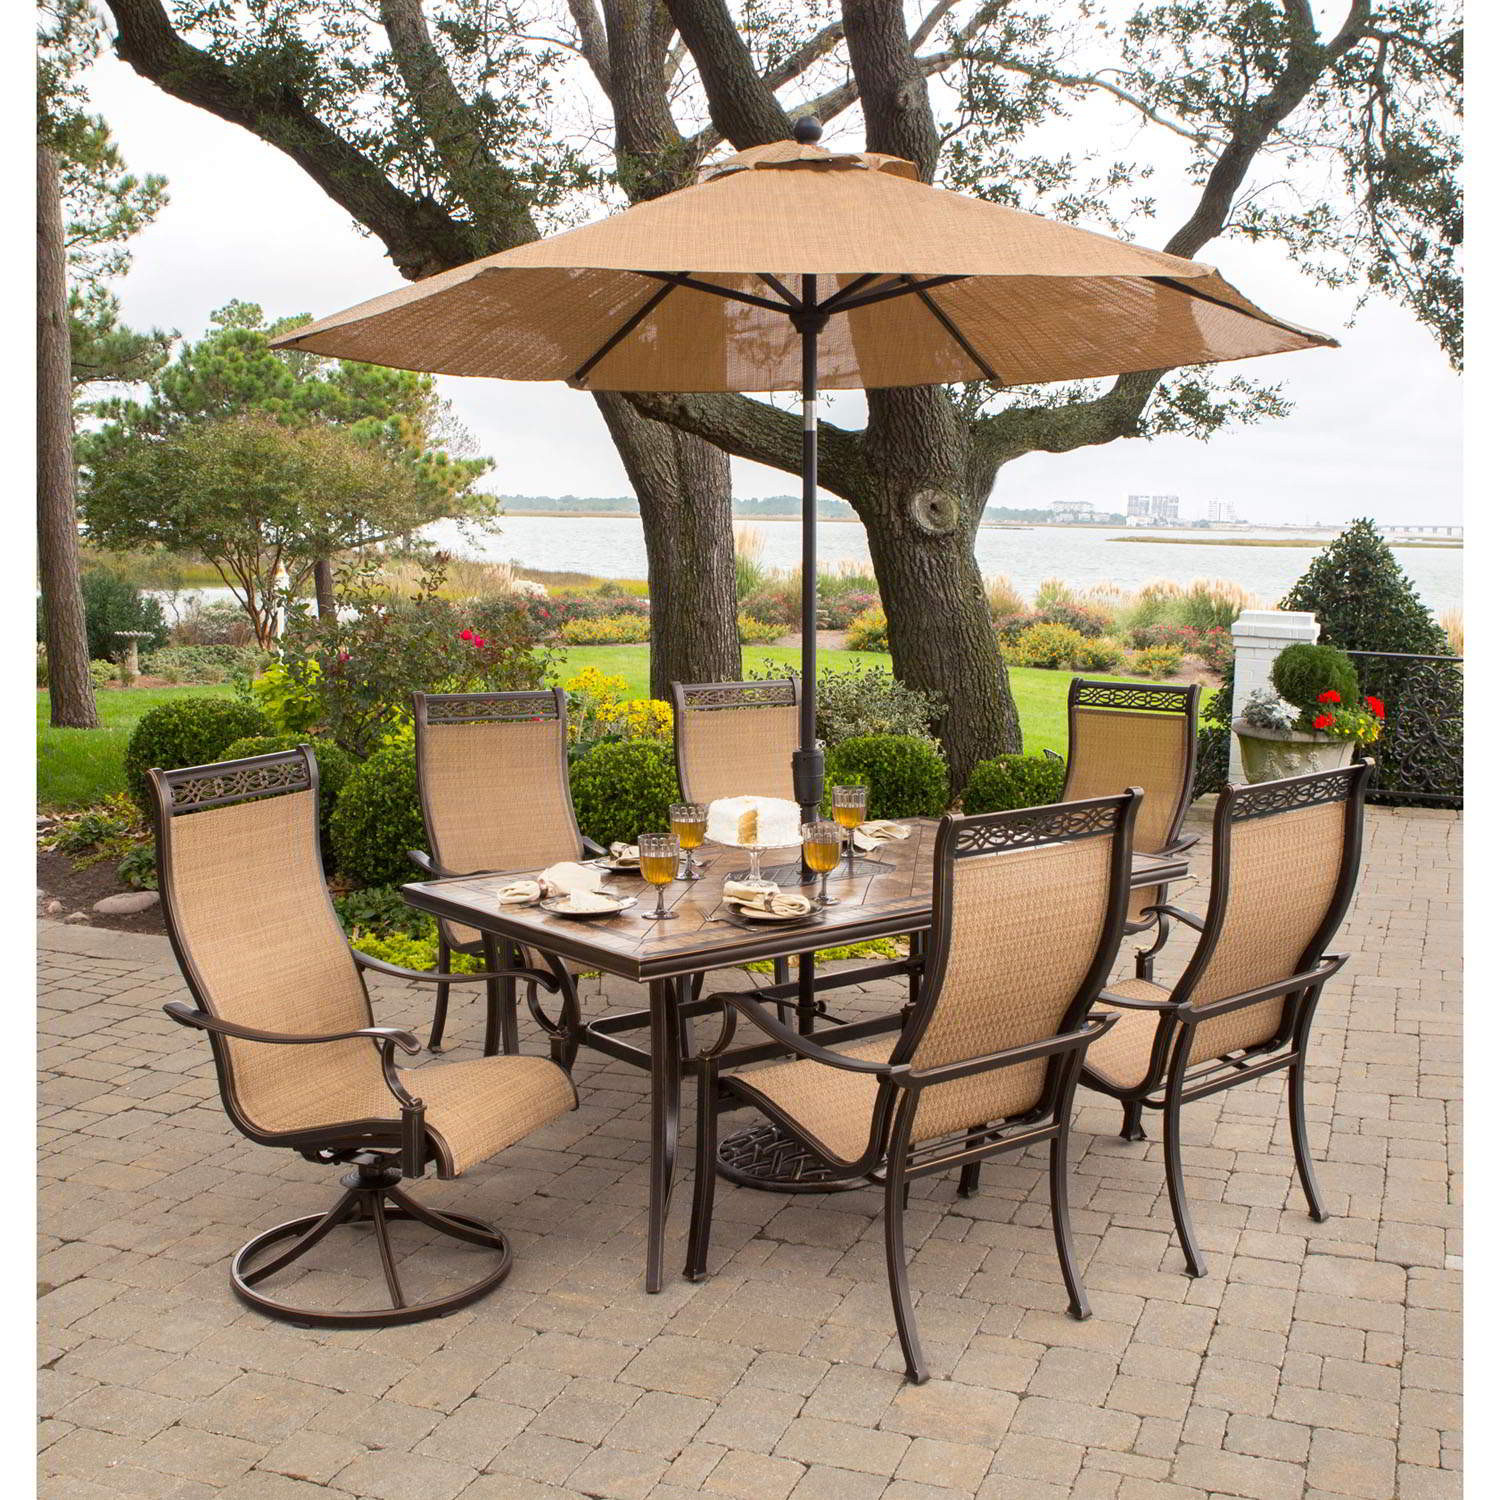 Best ideas about Patio Set With Umbrella . Save or Pin Monaco 7 Piece Dining Set with 9 Ft Table Umbrella Now.